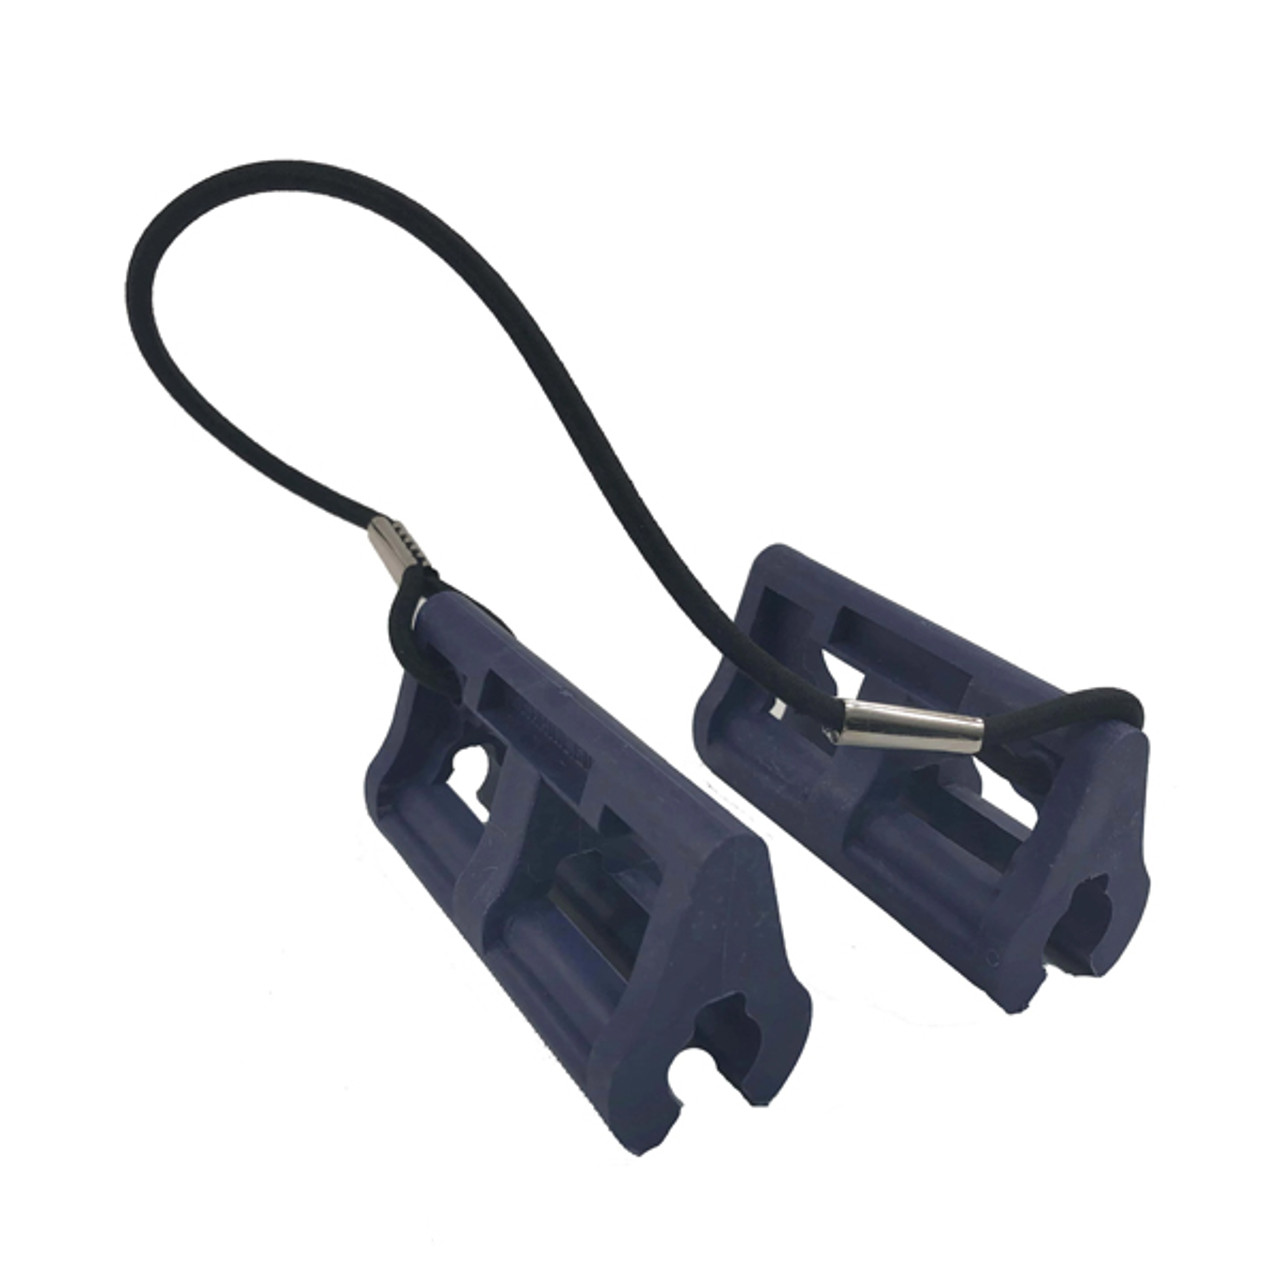 Steer-Stop Trailering Lock for Seastar /& Most Outboard Hydraulic Steering System